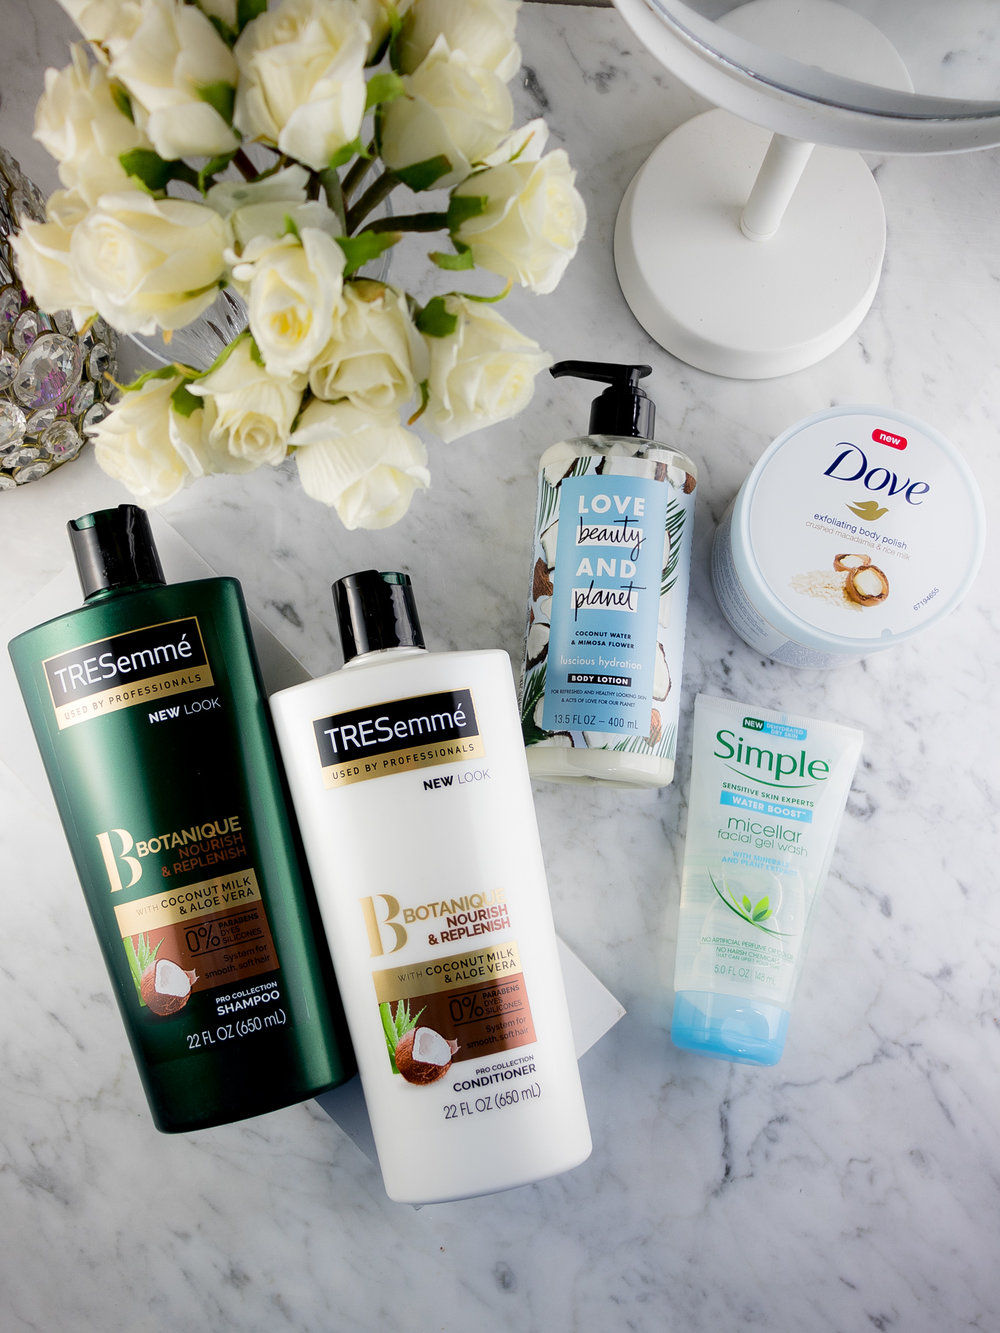 A NEW Personal Care Routine with Unilever Products